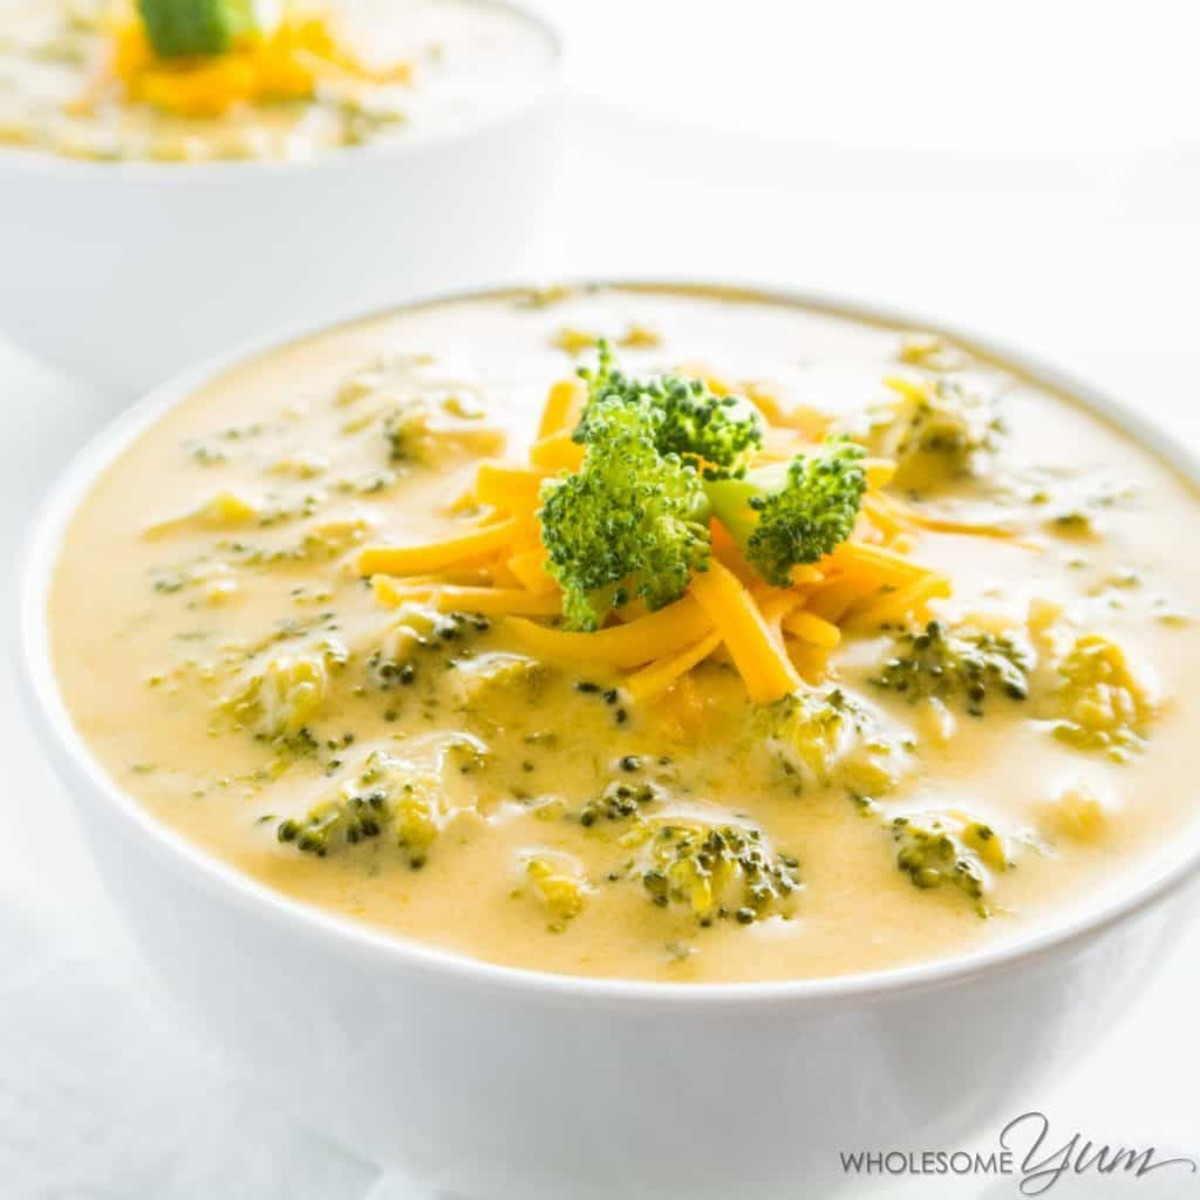 wholesomeyum_broccoli-cheese-soup-low-carb-gluten-free